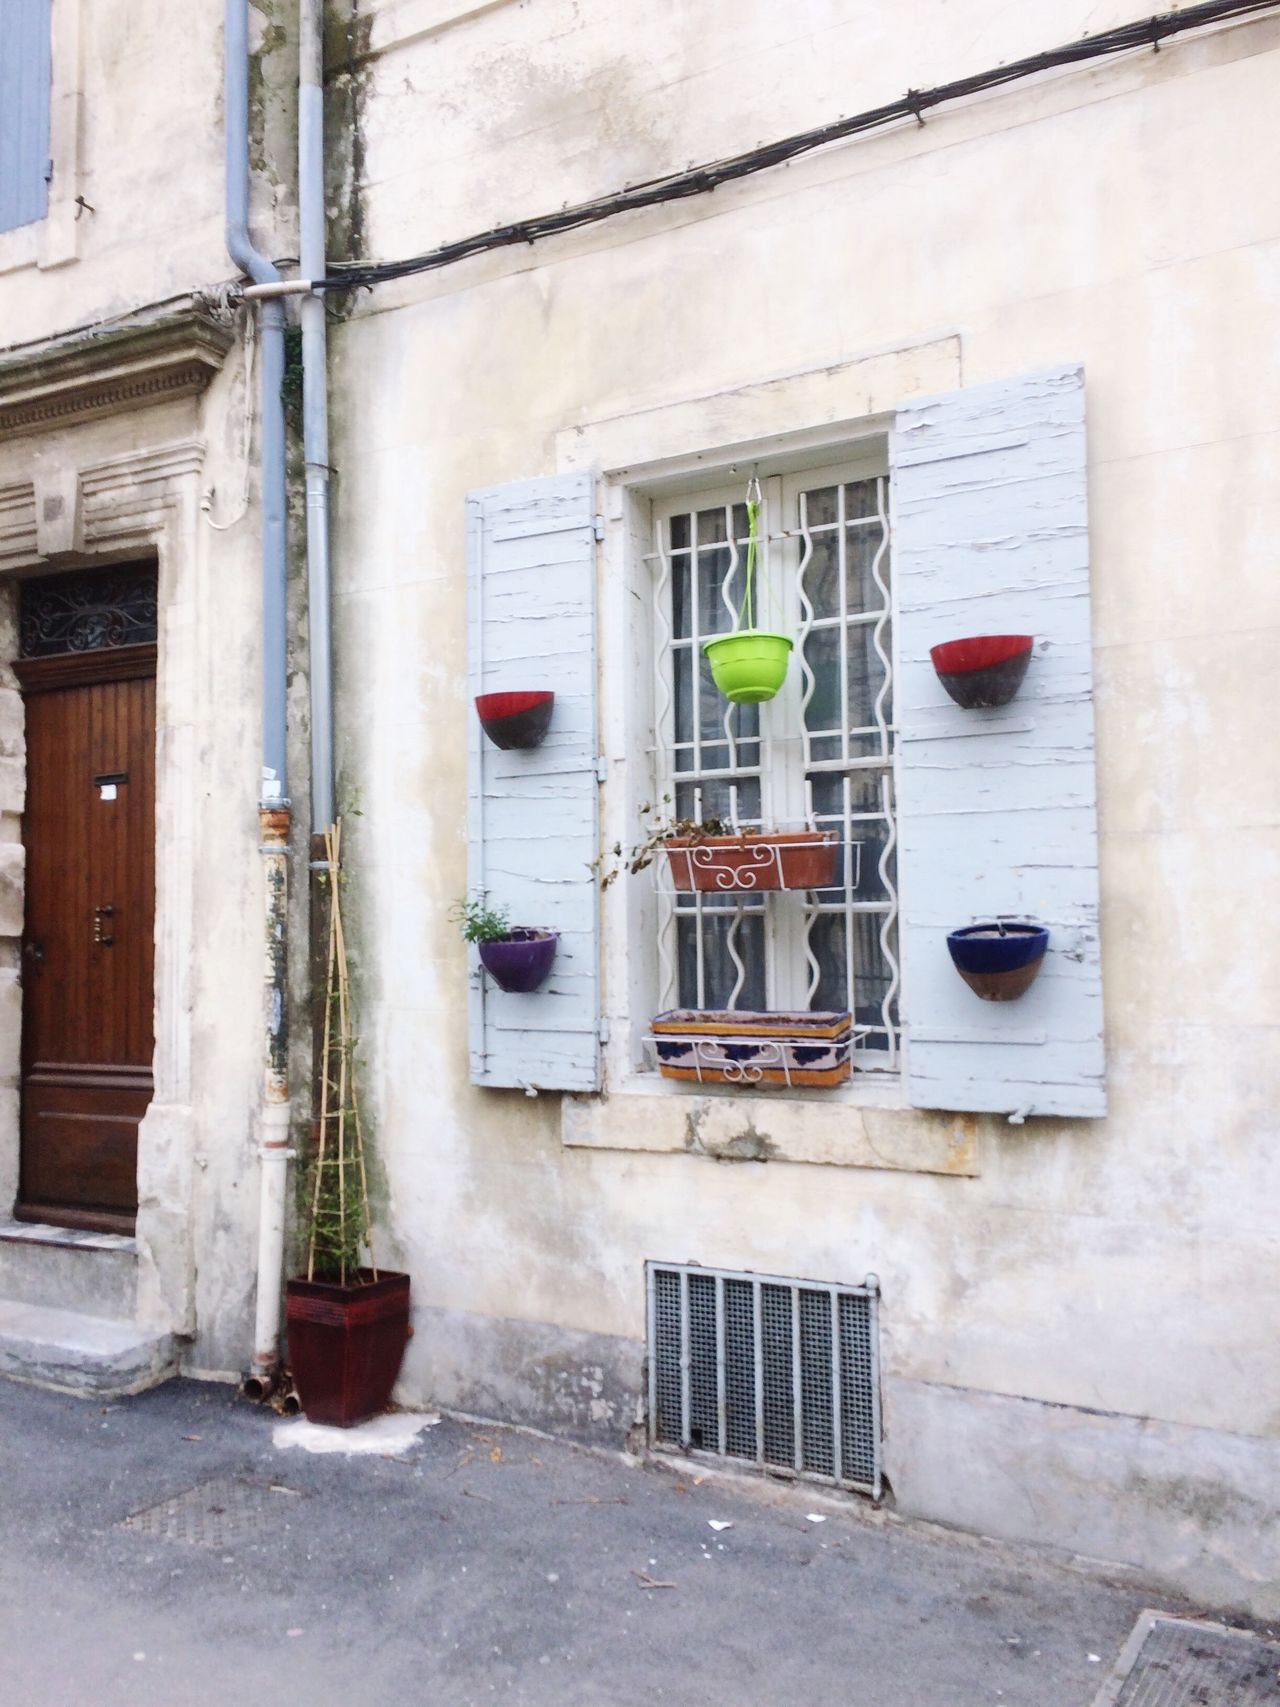 Window Built Structure No People Window Box White Color France 🇫🇷 France Arles